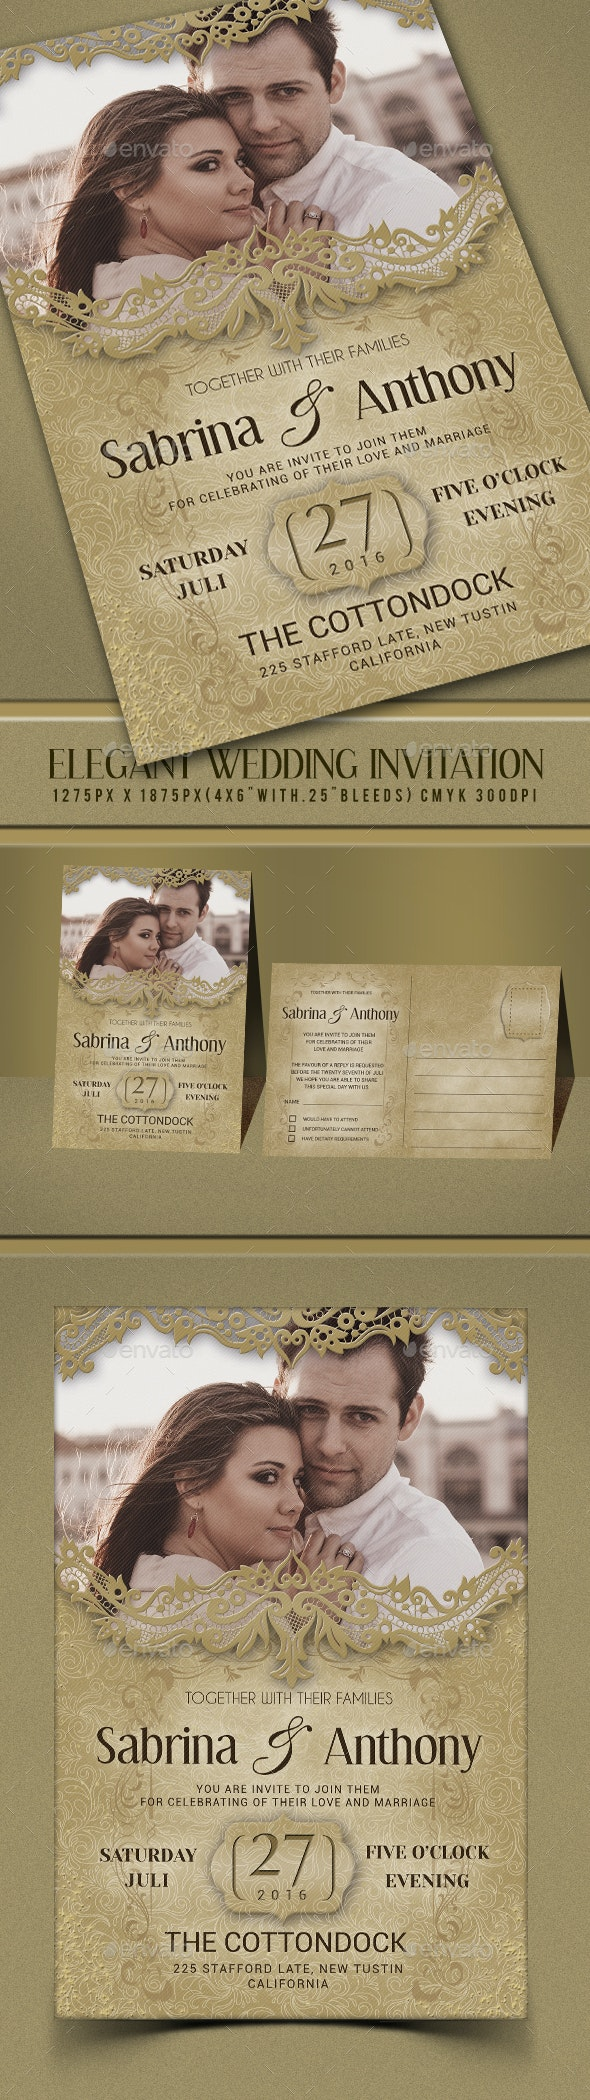 Elegant Wedding Invitation - Invitations Cards & Invites